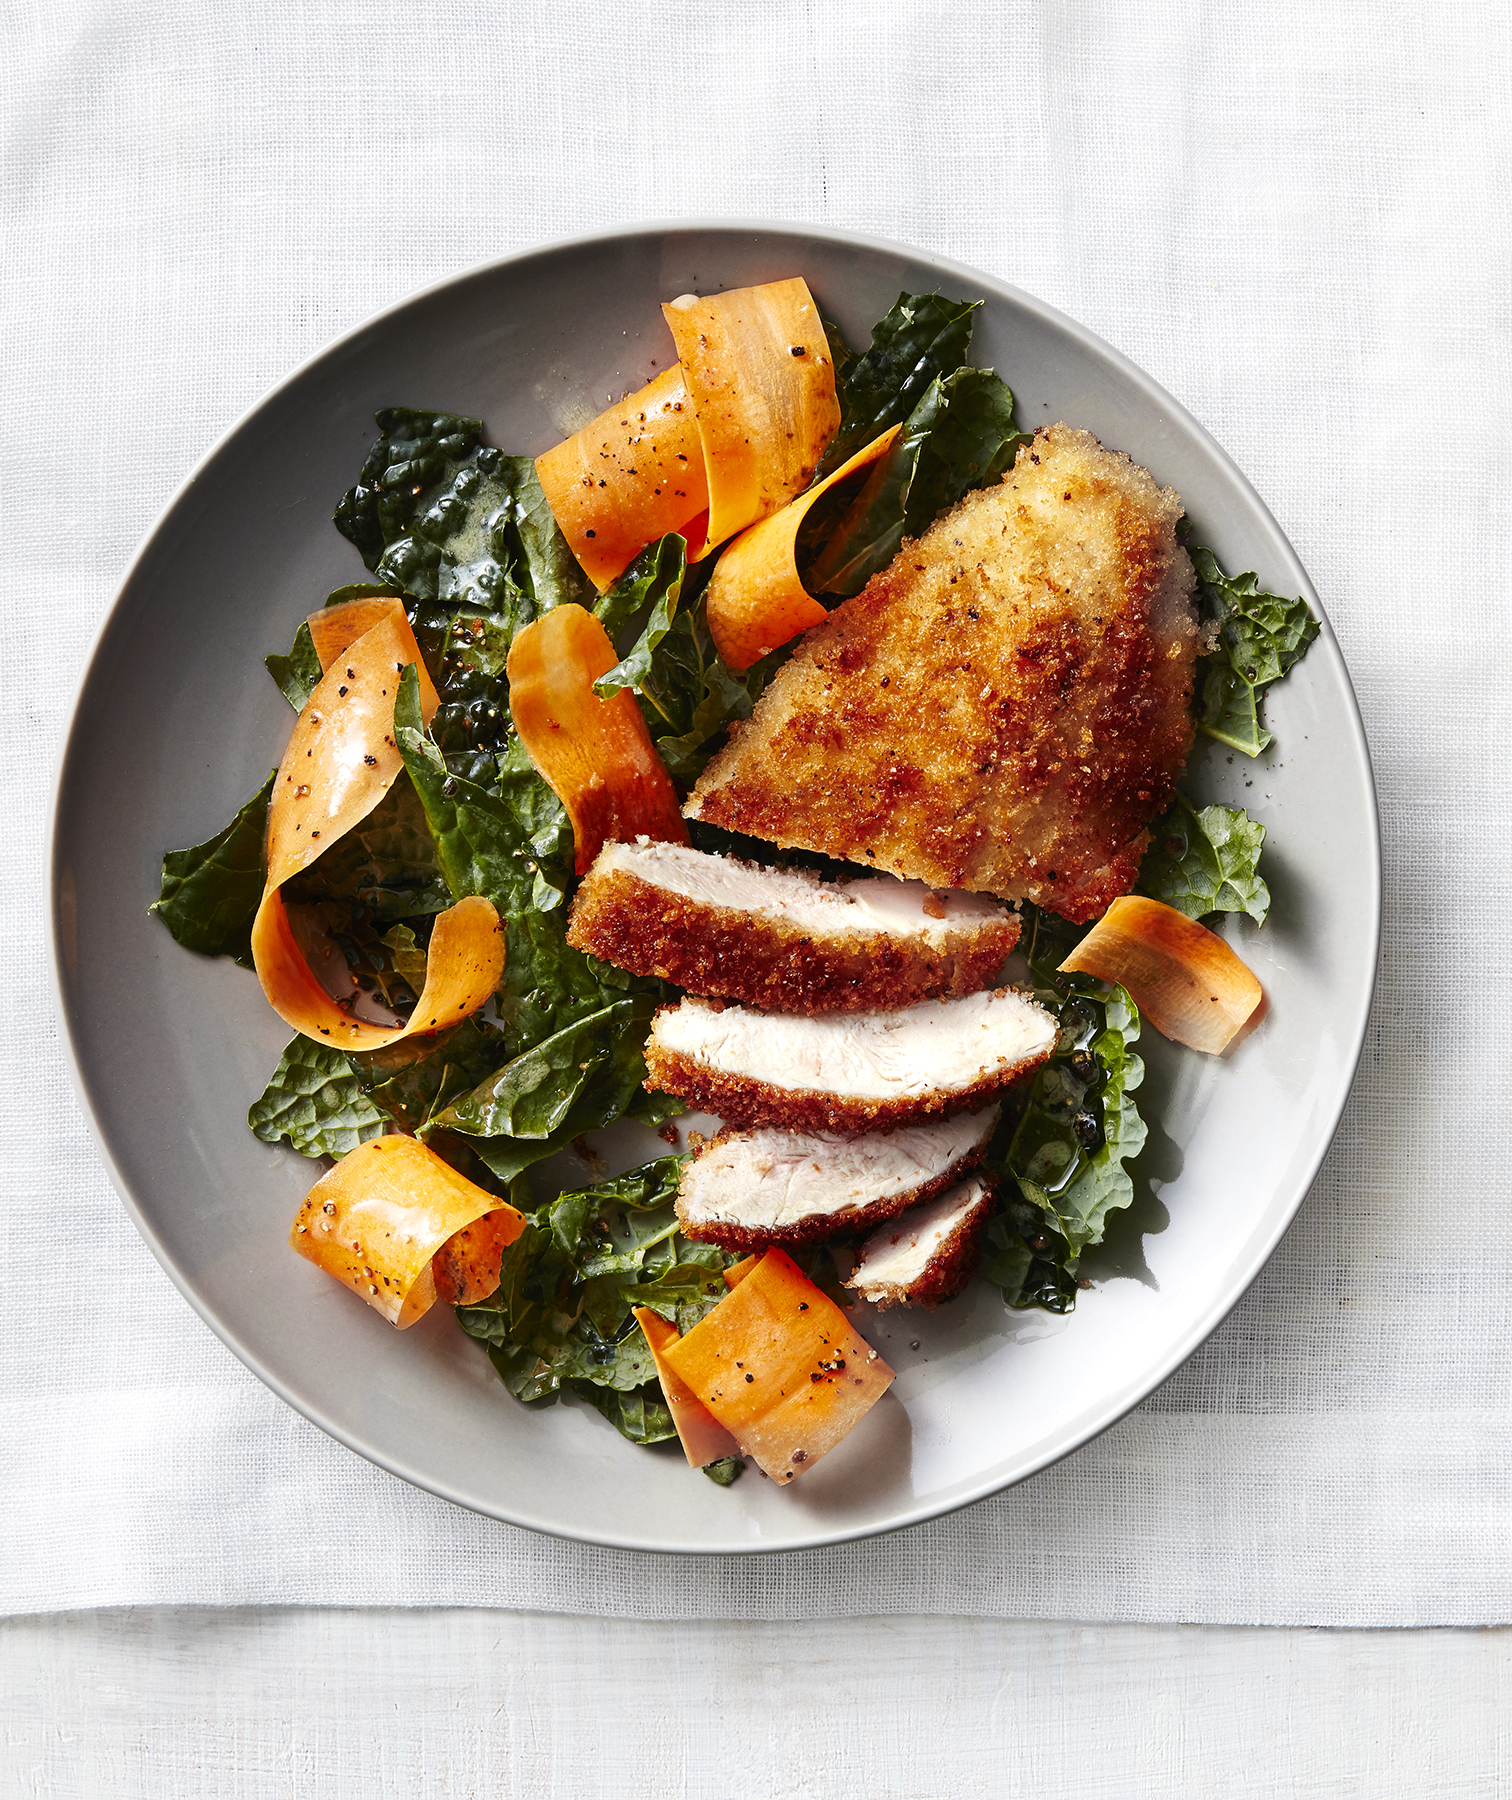 Crispy Chicken Cutlets With Carrot and Kale Salad